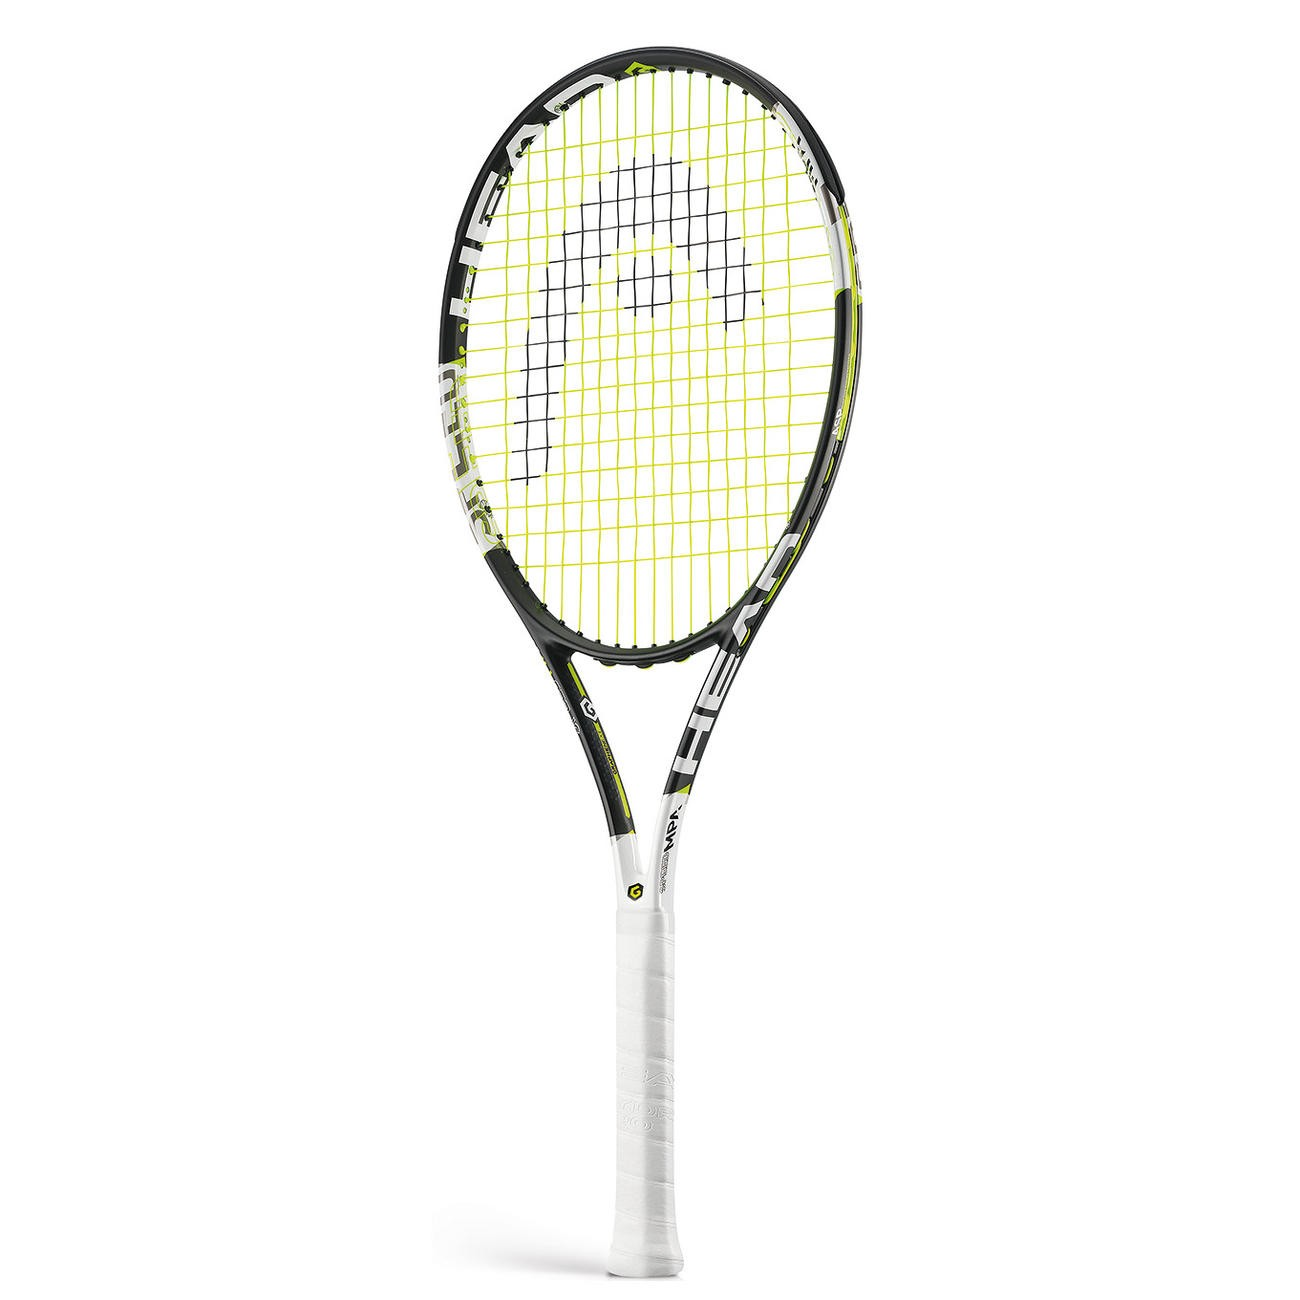 Rakieta tenisowa Head Graphene XT Speed MP A